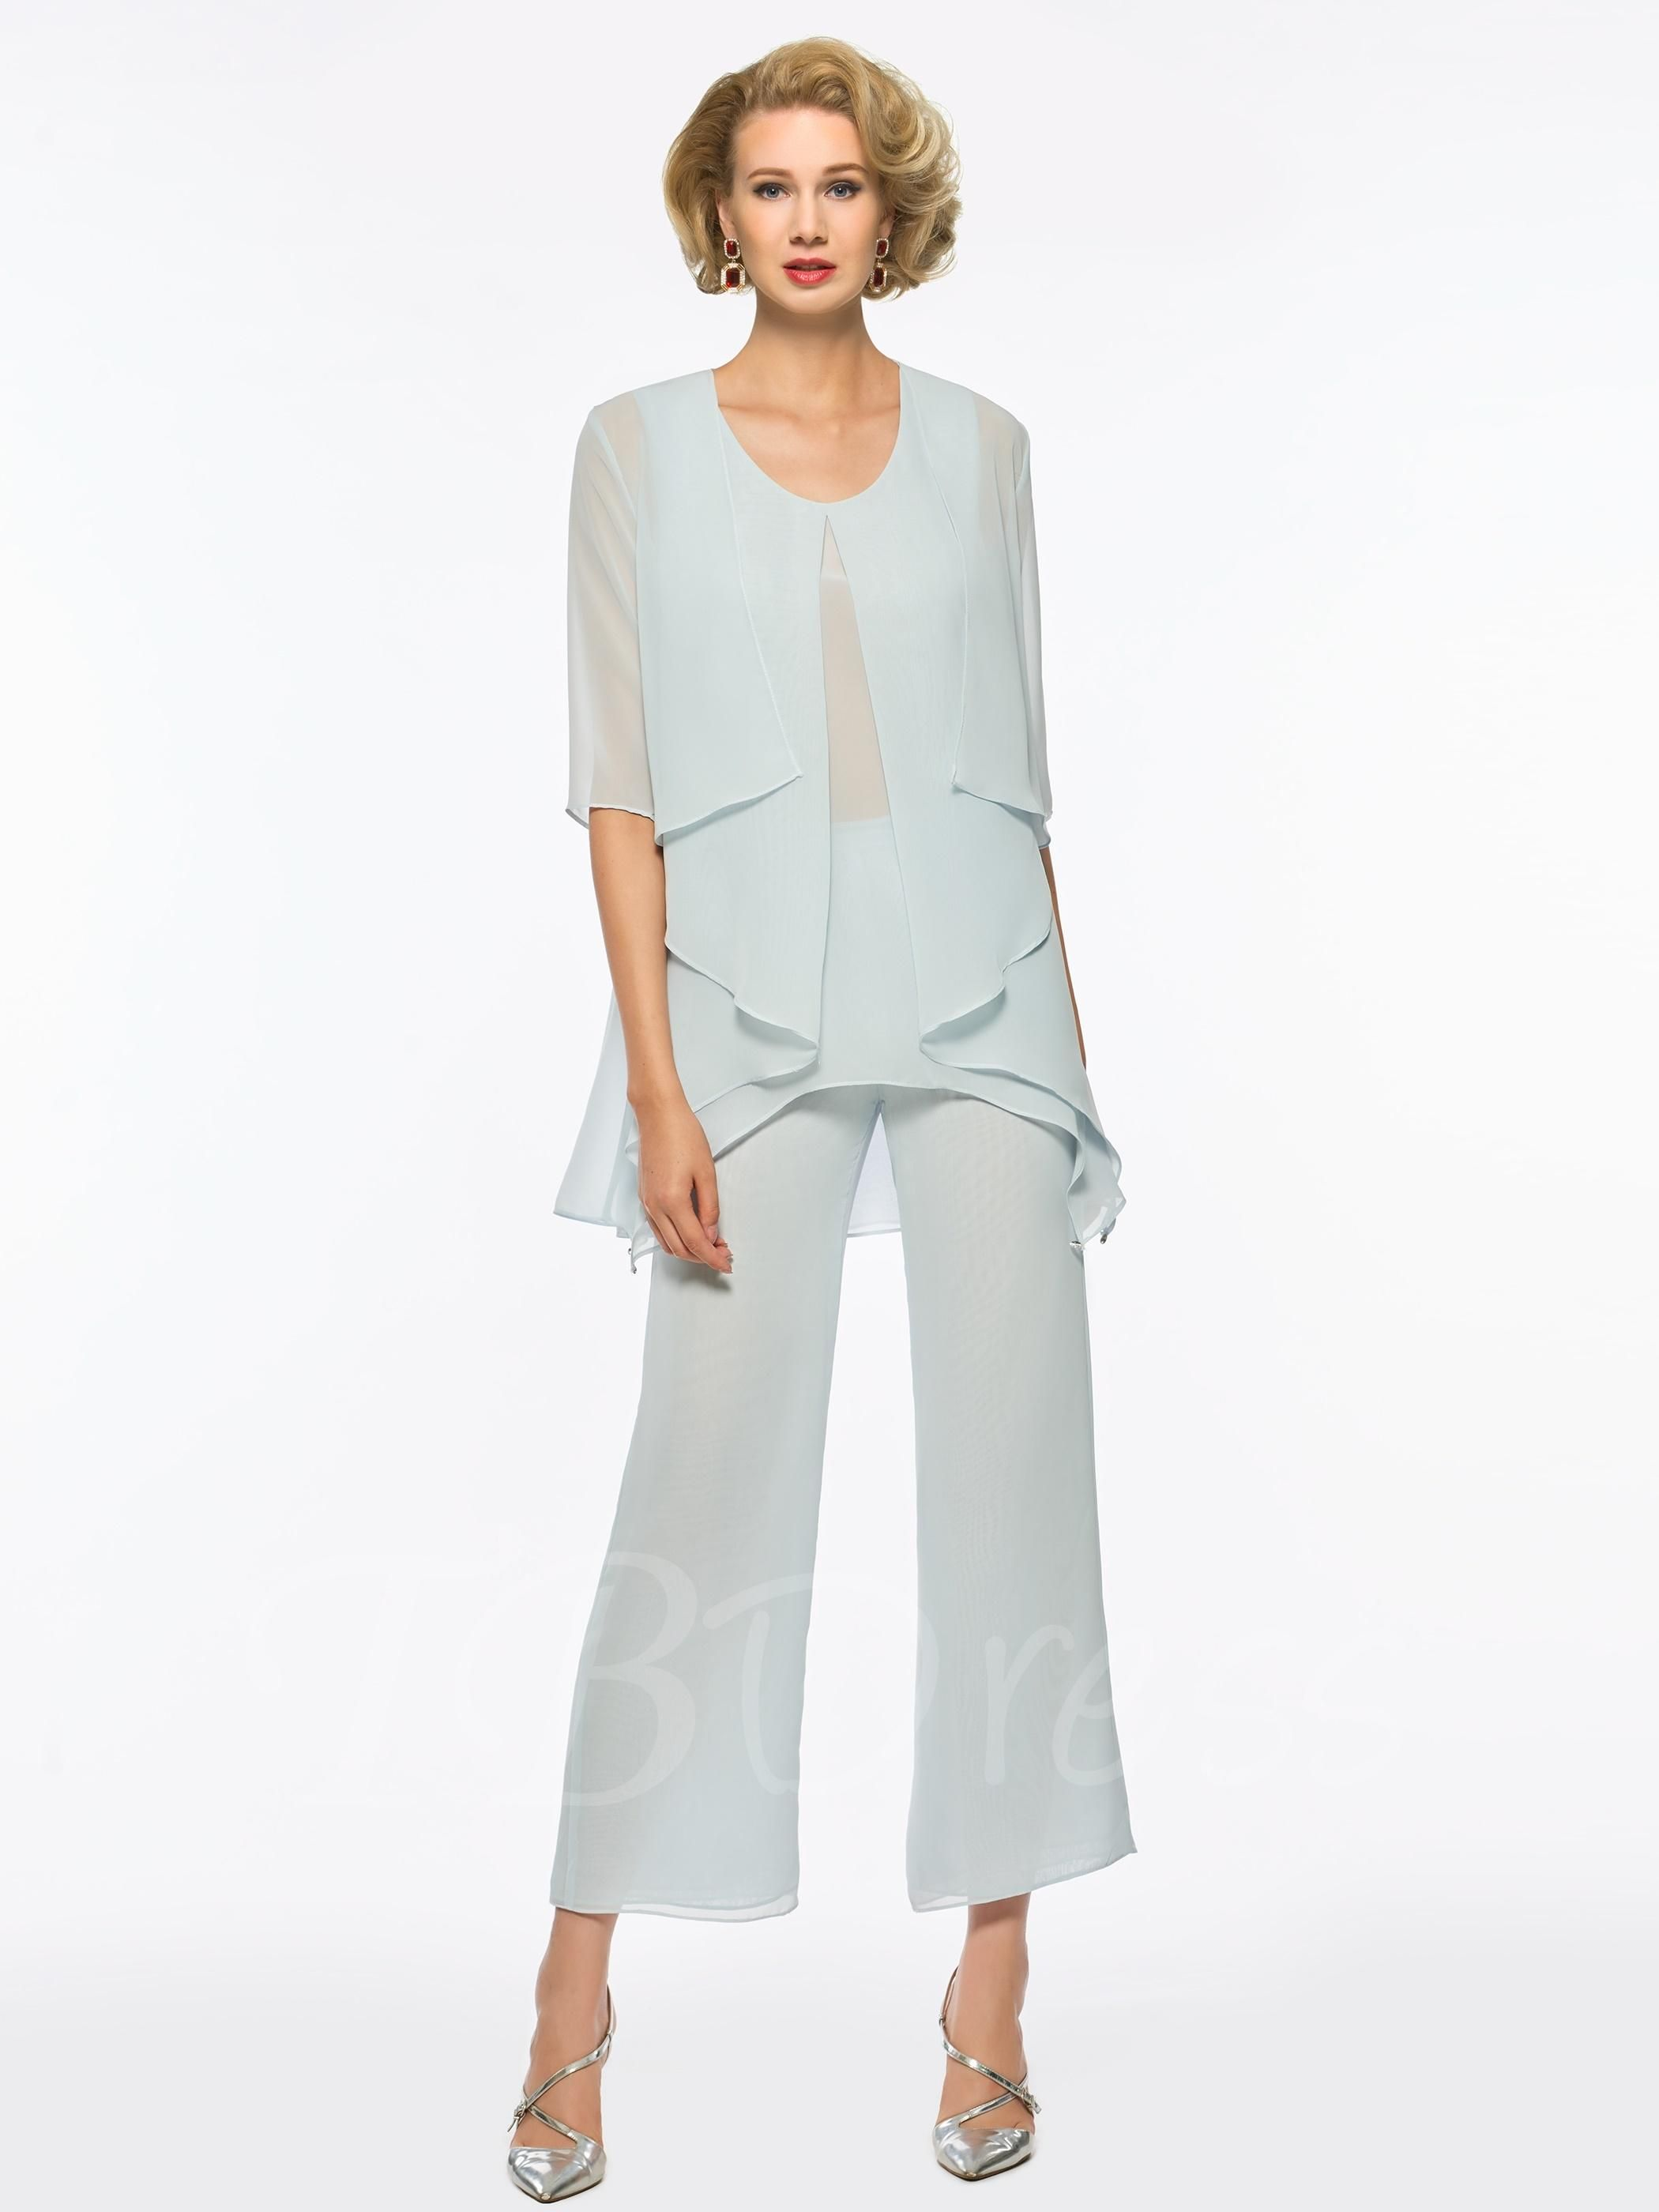 Scoop neck chiffon mother of the bride jumpsuit with jacket in